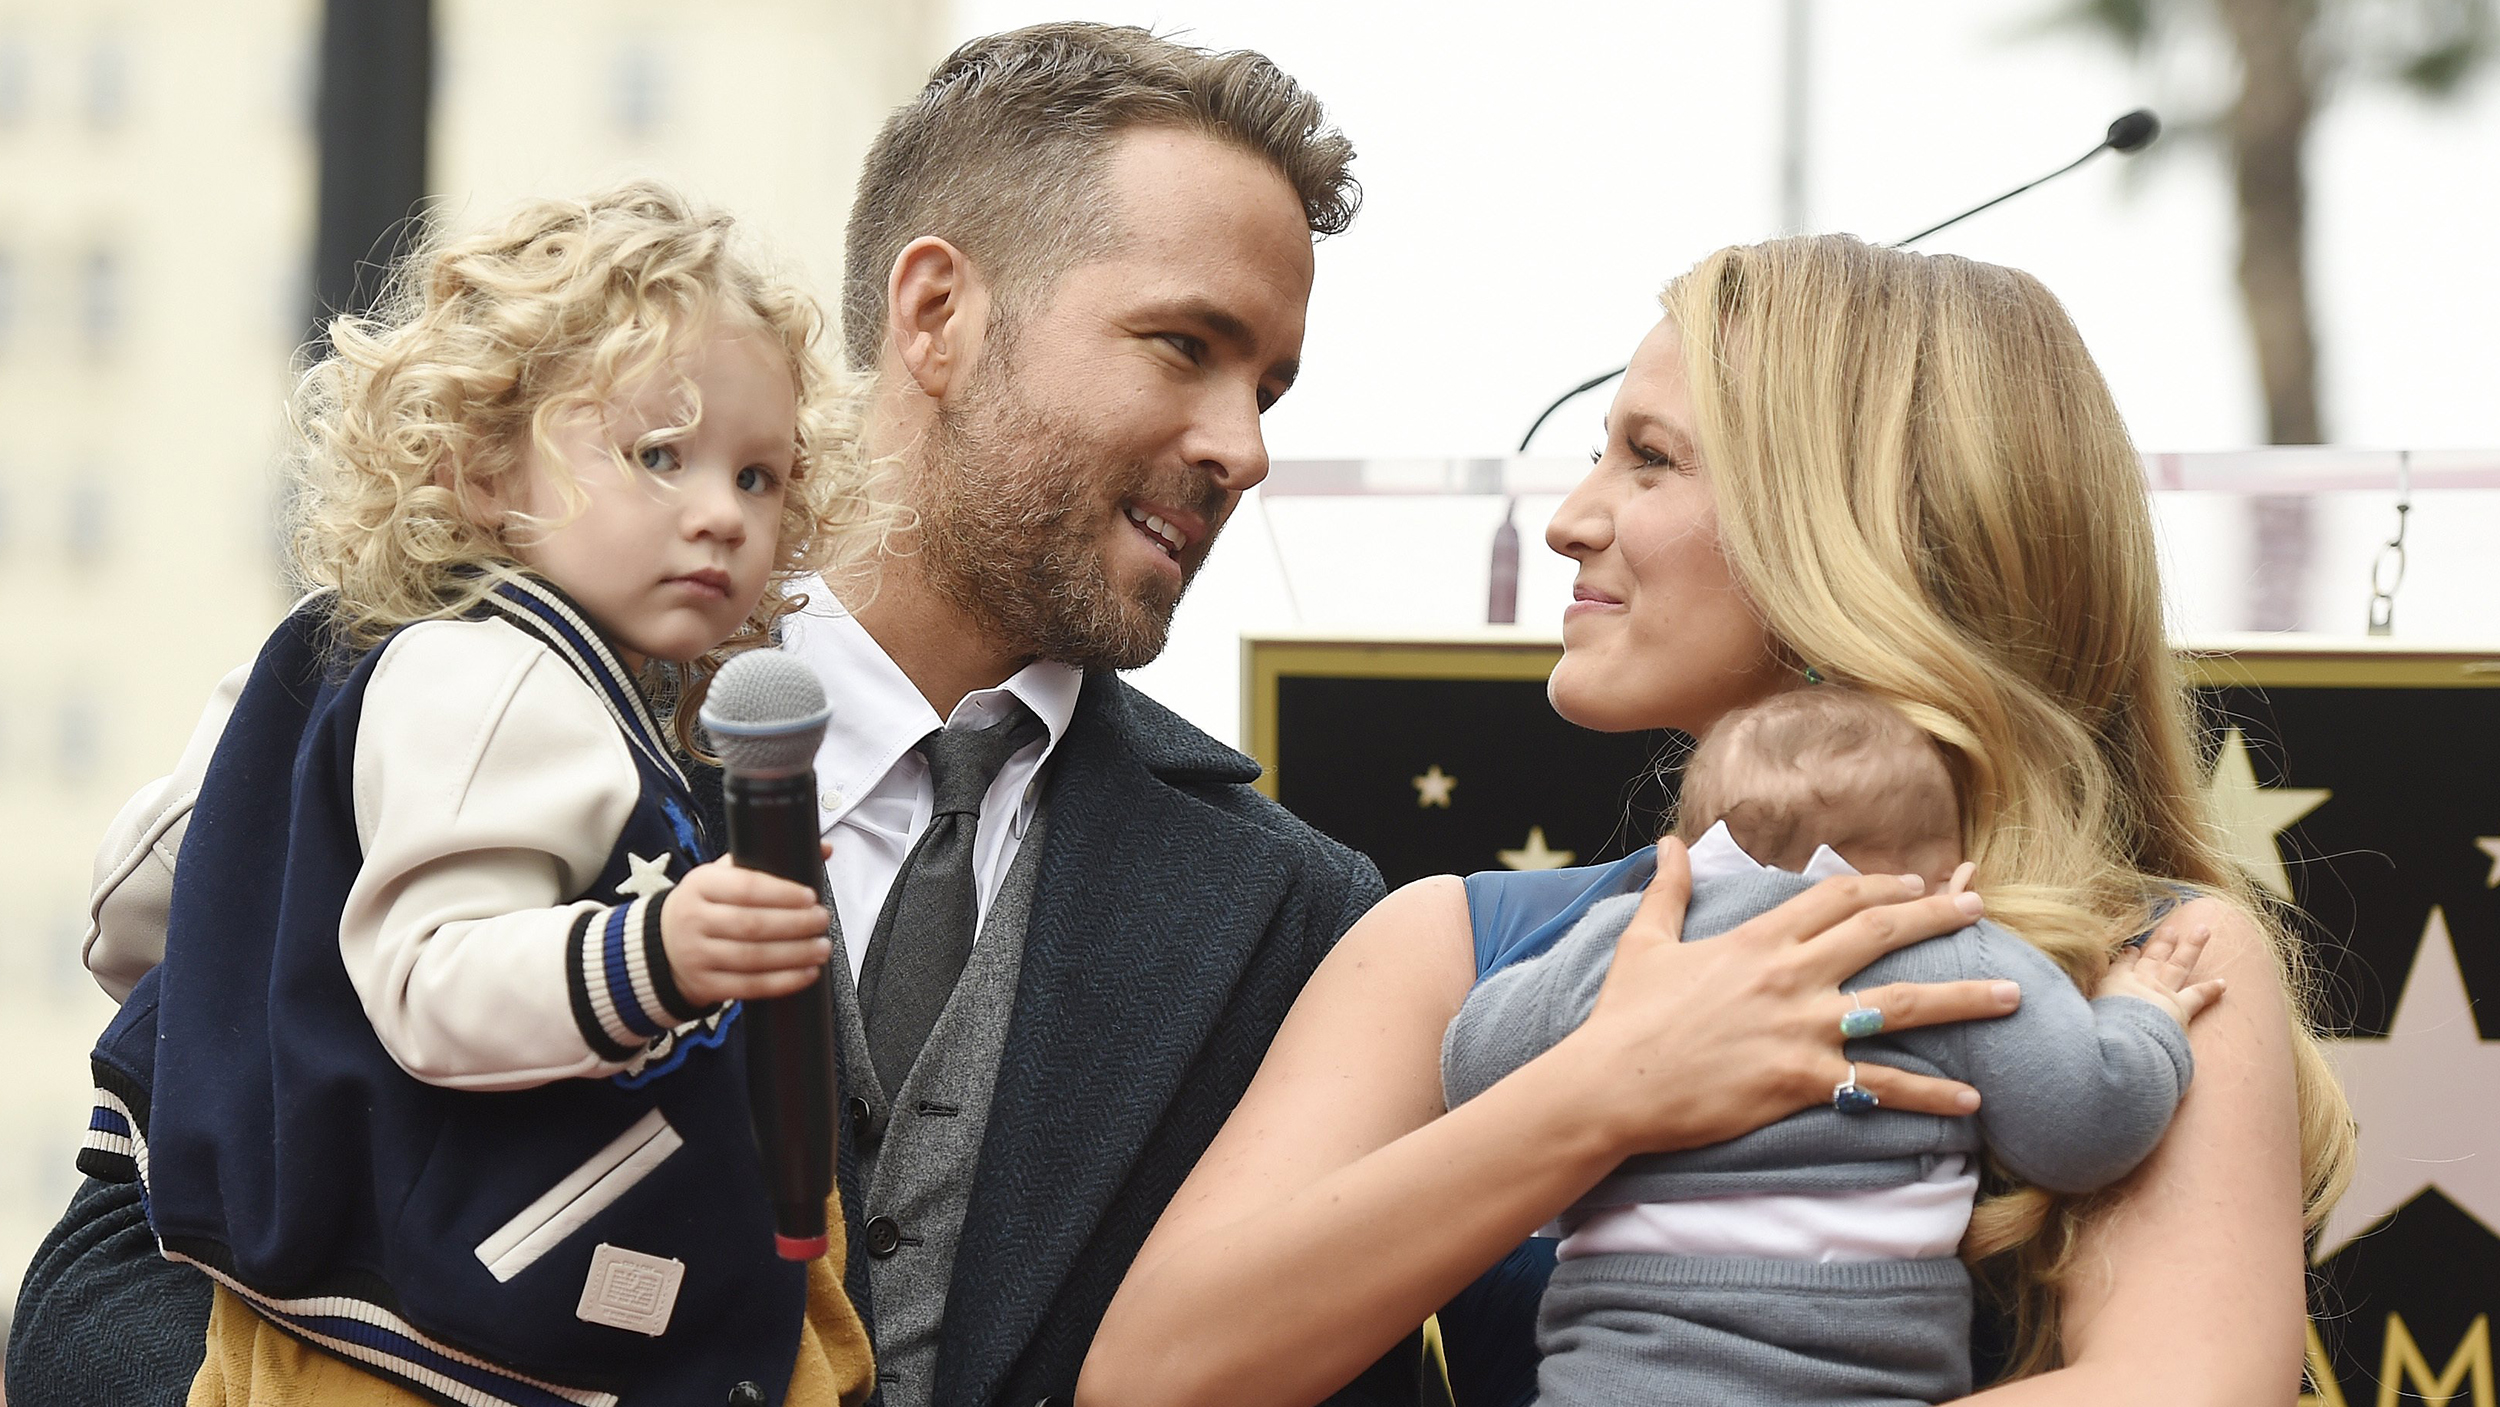 Ryan Reynolds Opens Up About Anxiety Says Blake Lively